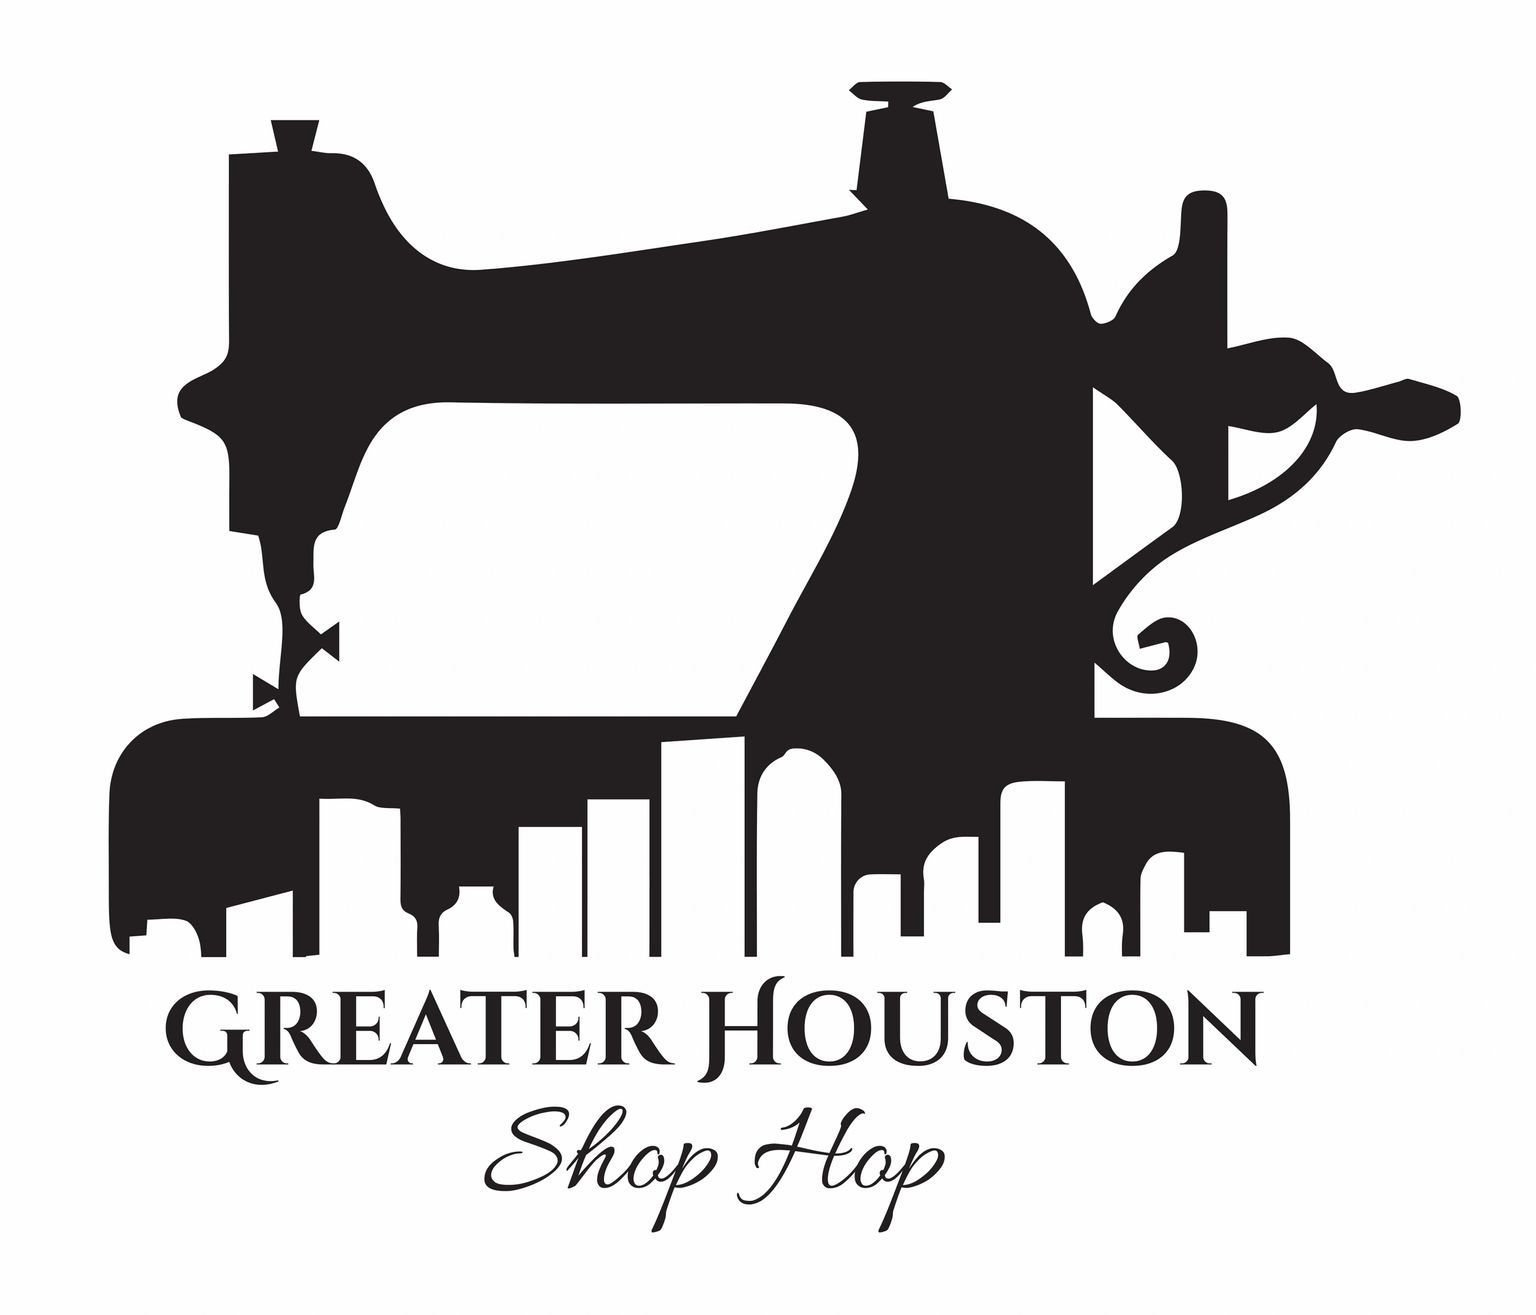 greater houston shop hop logo.jpg